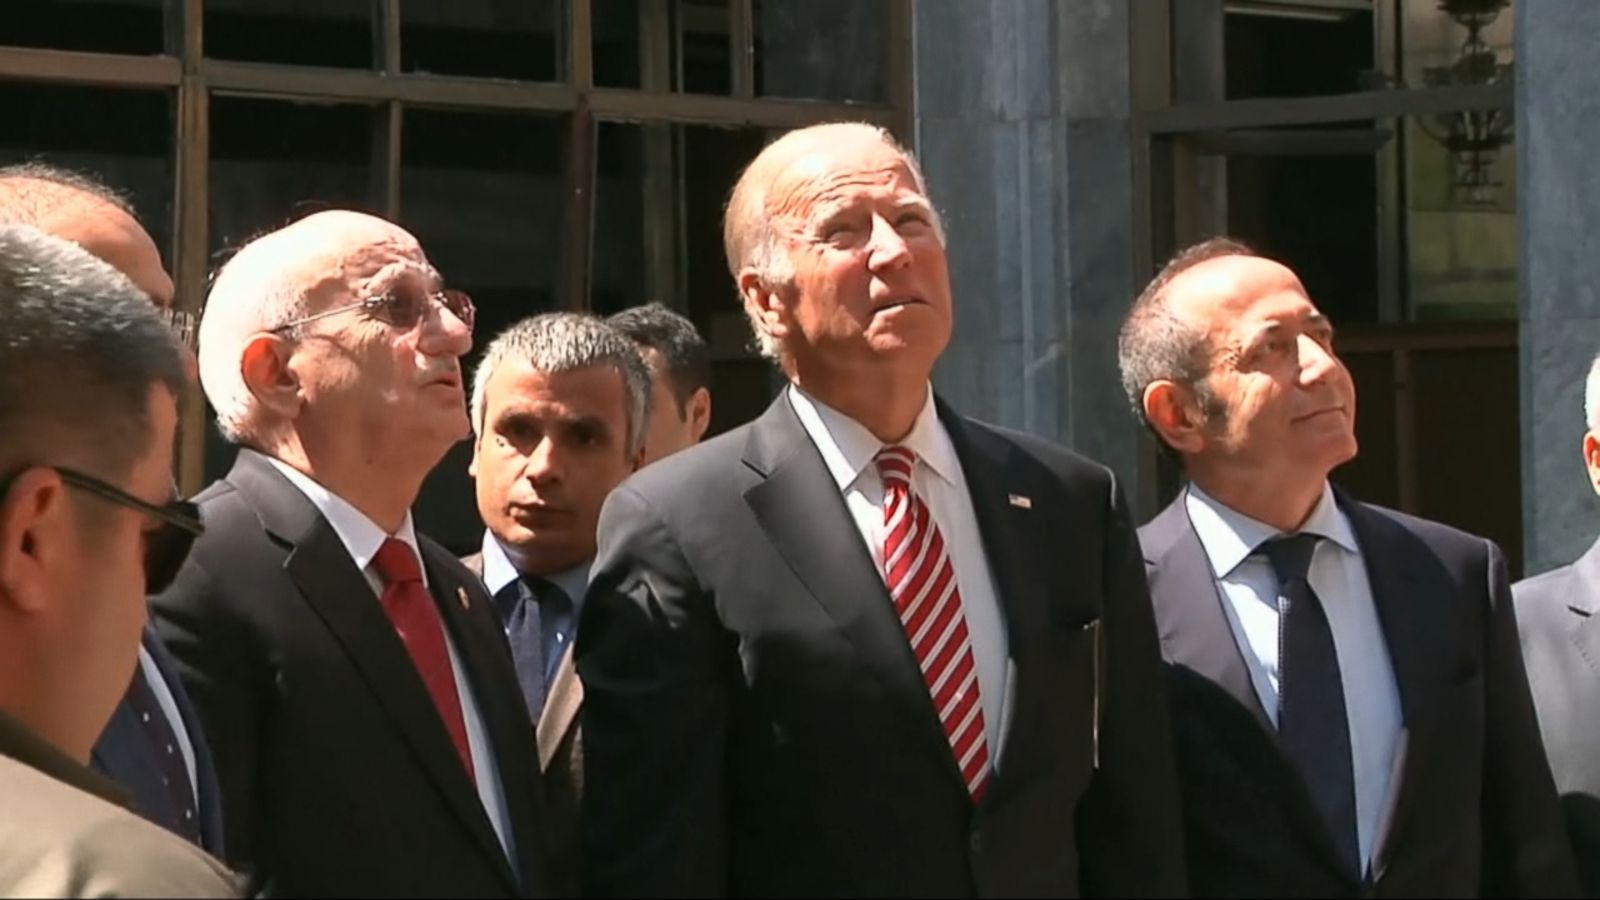 Vice President Joe Biden is in Turkey today meeting with the country's leadership, starting with a tour of the Turkish Parliament building that was damaged by airstrikes during last month's failed coup attempt.